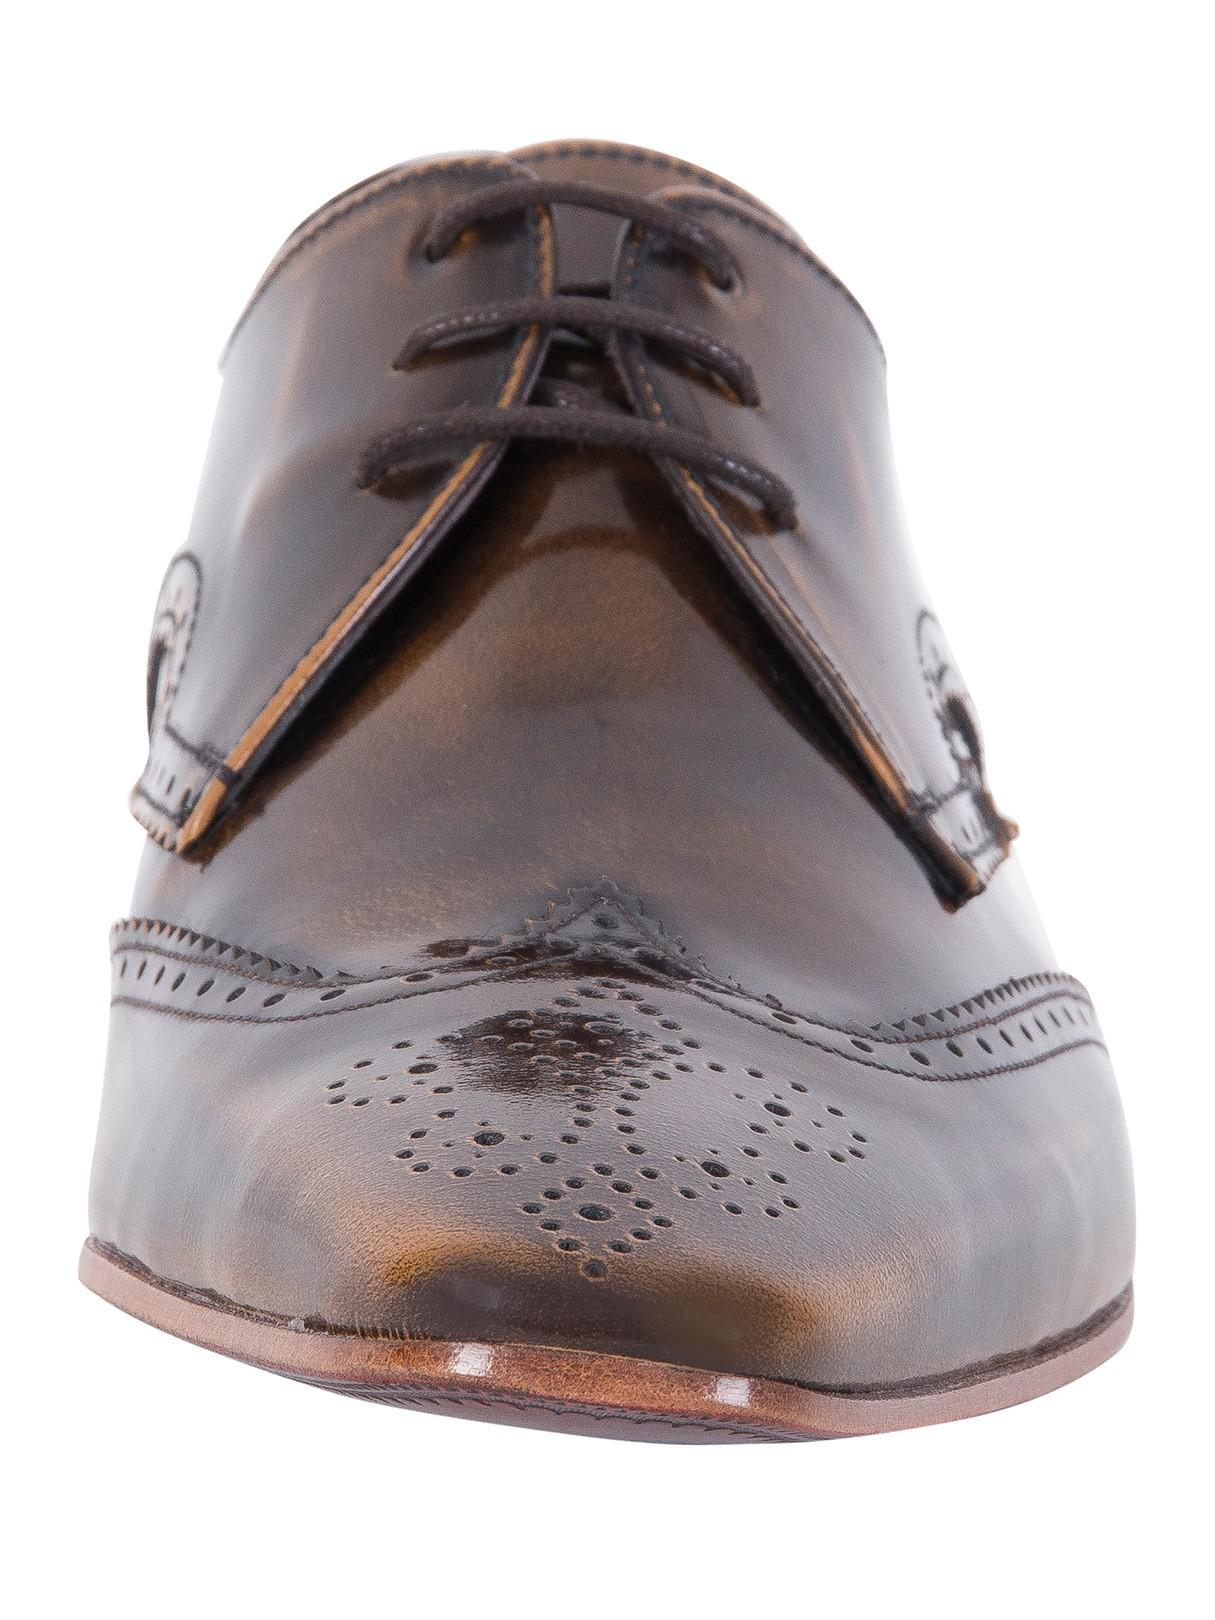 Jeffery West Leather College Camel Polished Shoes in Brown for Men